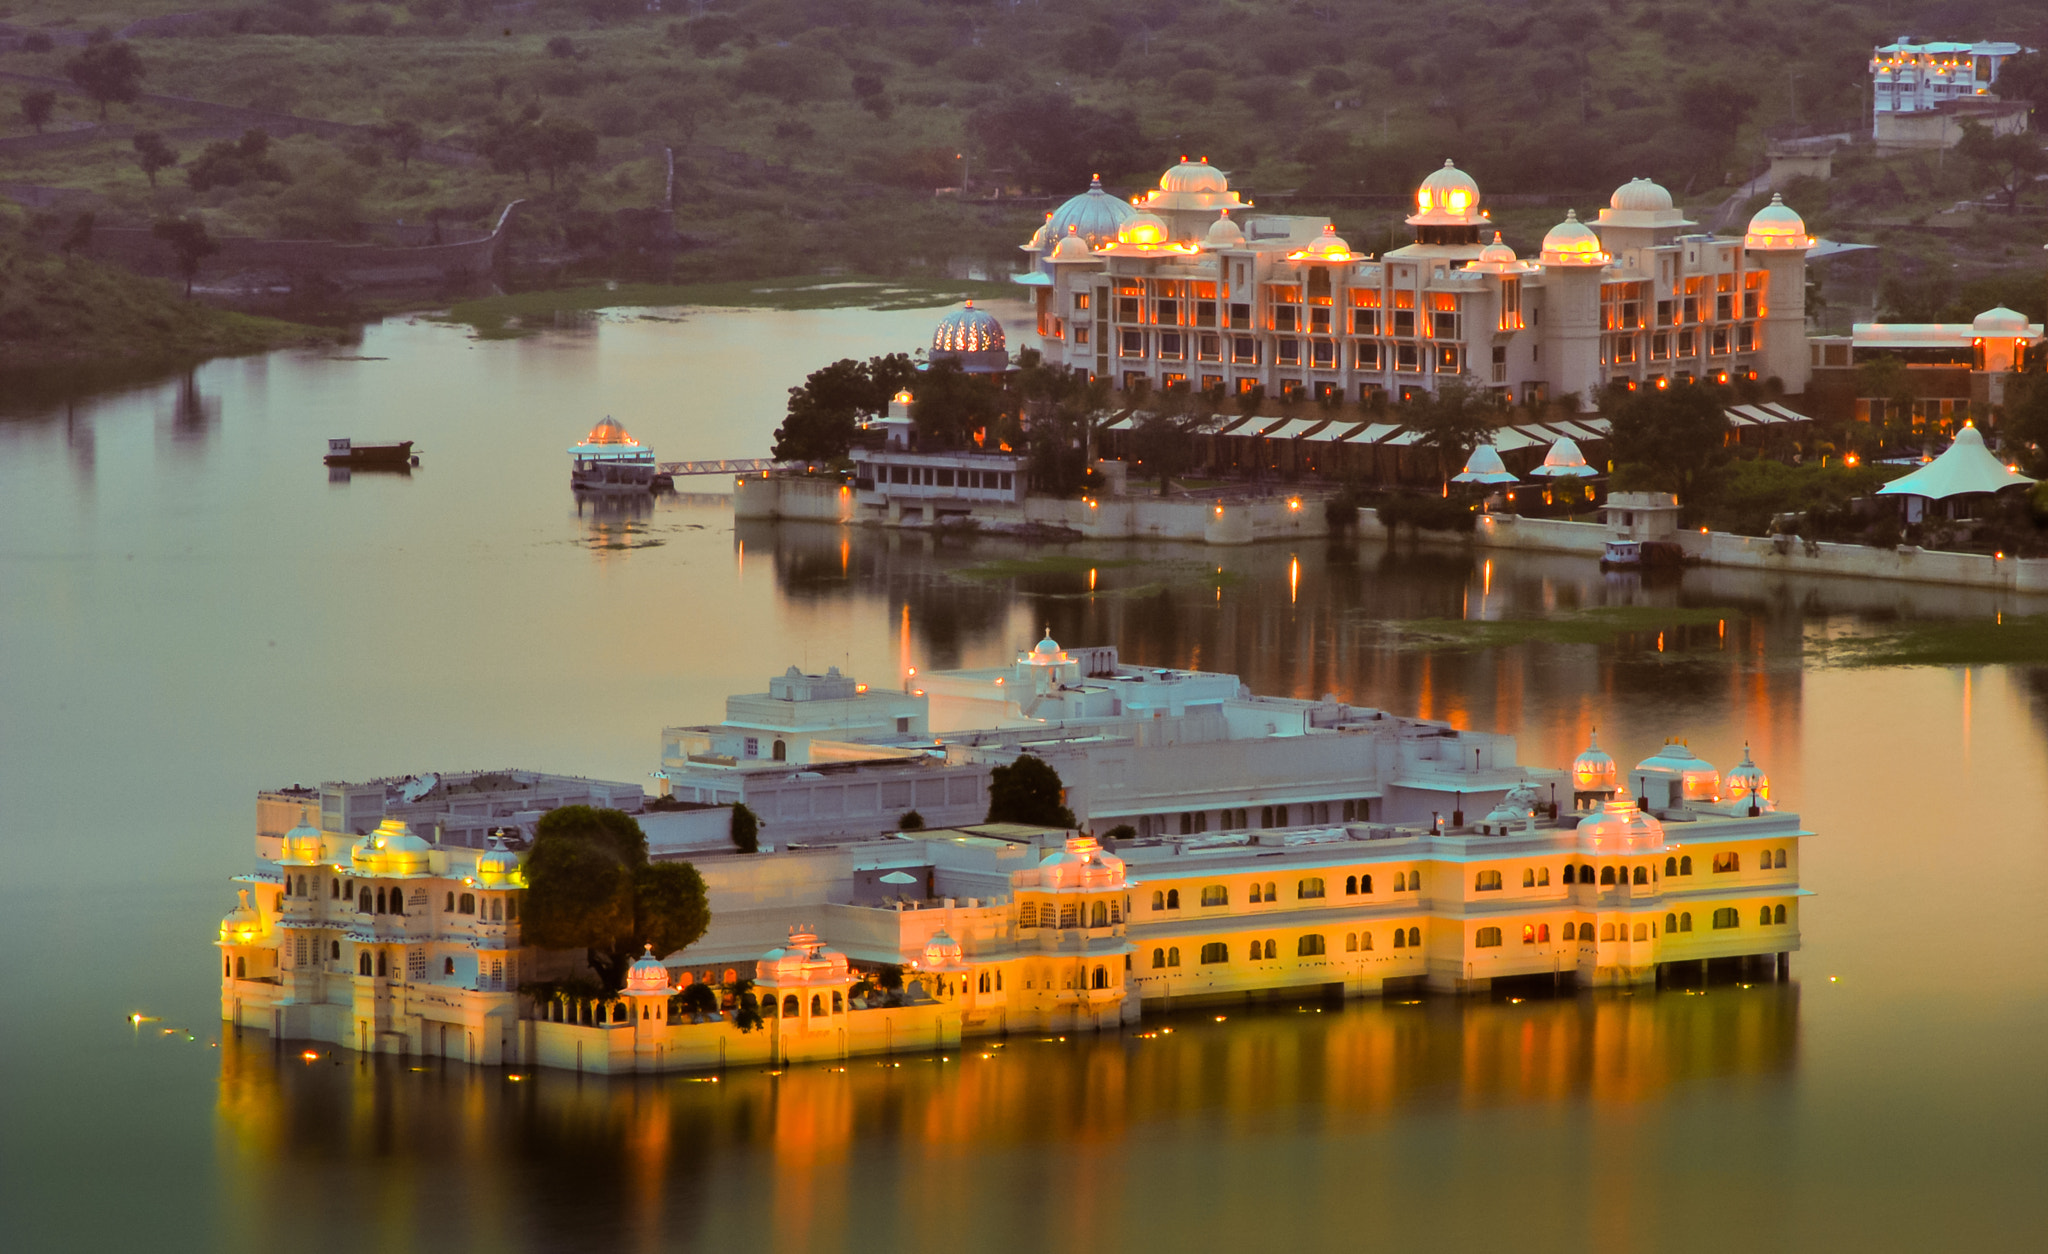 Photograph Jag Niwas at udaipur by ANUP SANE on 500px